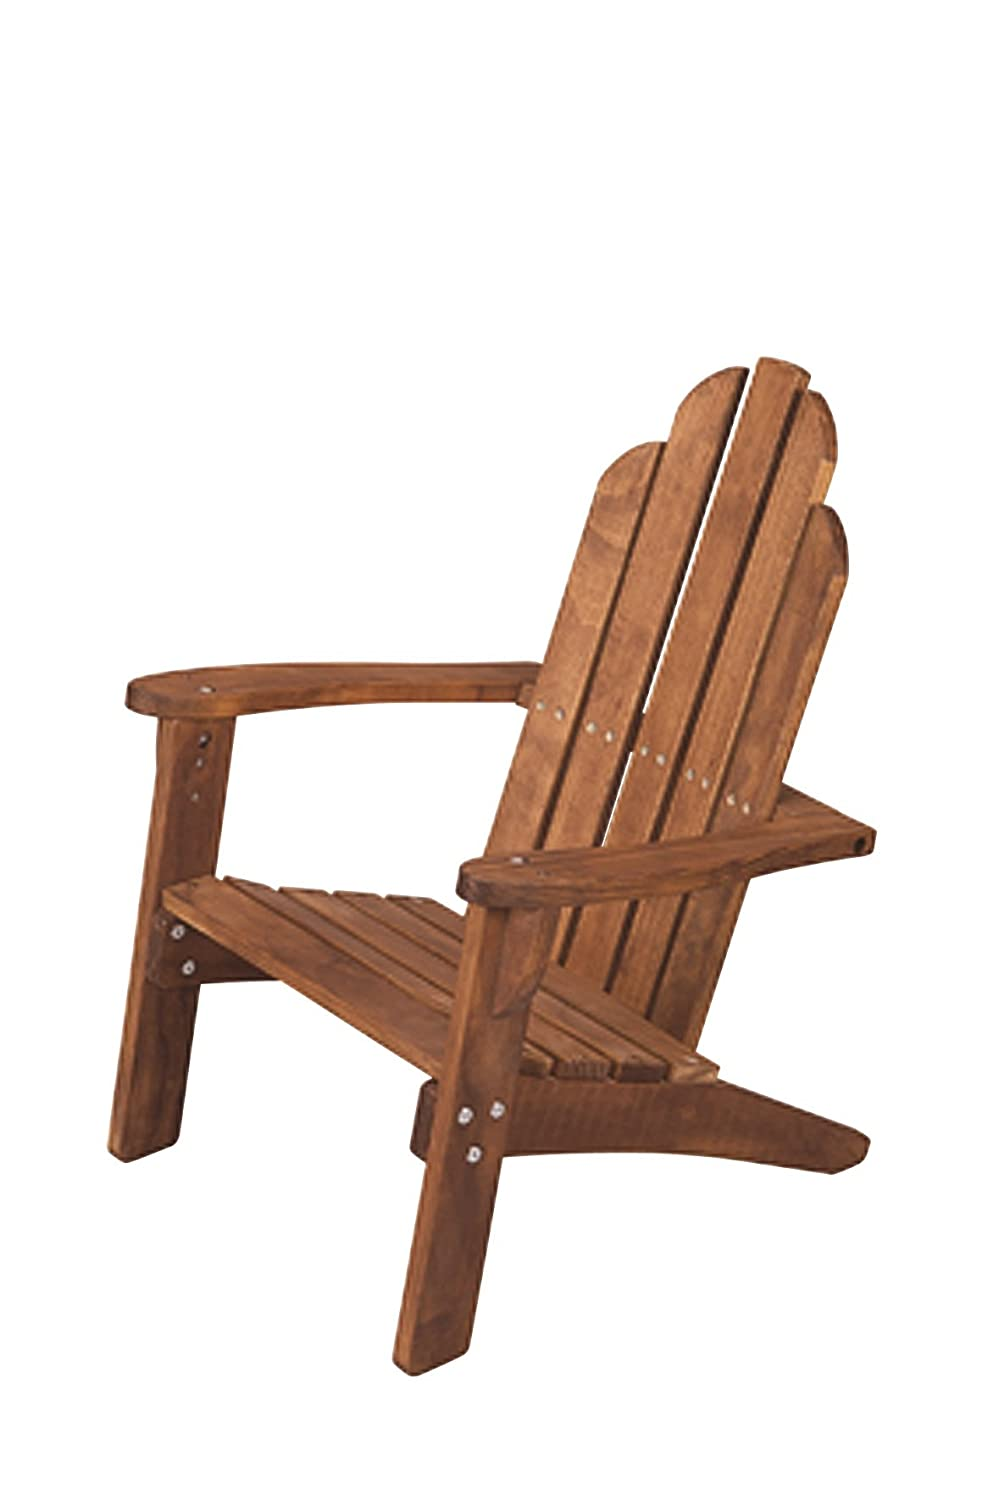 Amazon.com: Maxim Childu0027s Adirondack Chair. Kids Outdoor Wood Patio  Furniture For Backyard, Lawn U0026 Deck: Toys U0026 Games